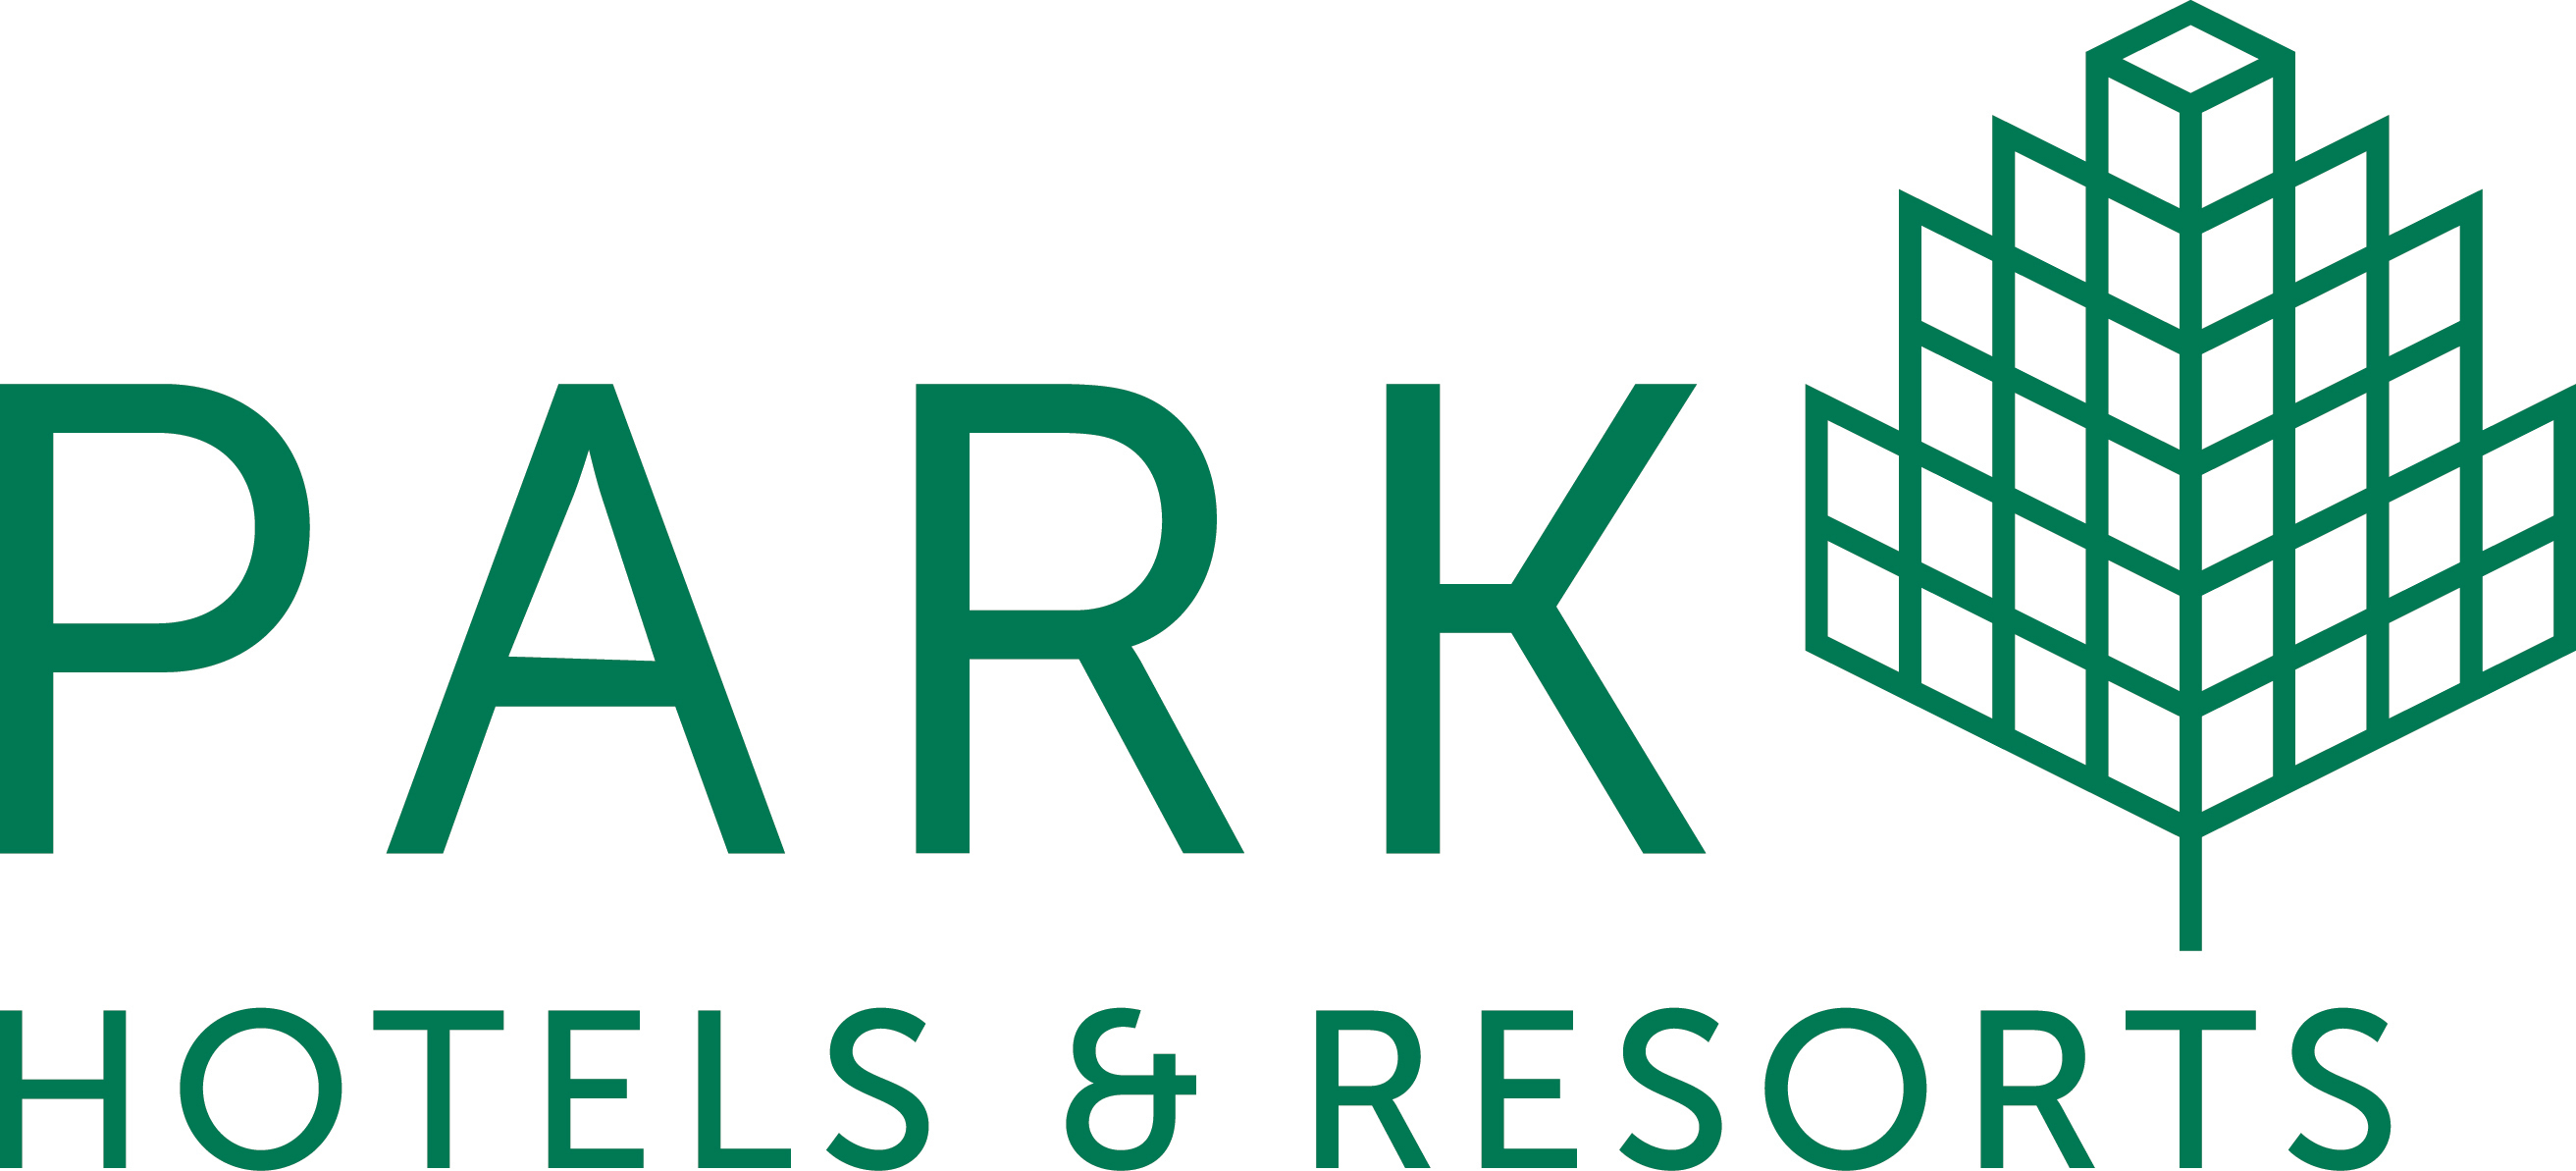 Hilton Introduces Board Of Directors For Park Hotels Resorts Business Wire